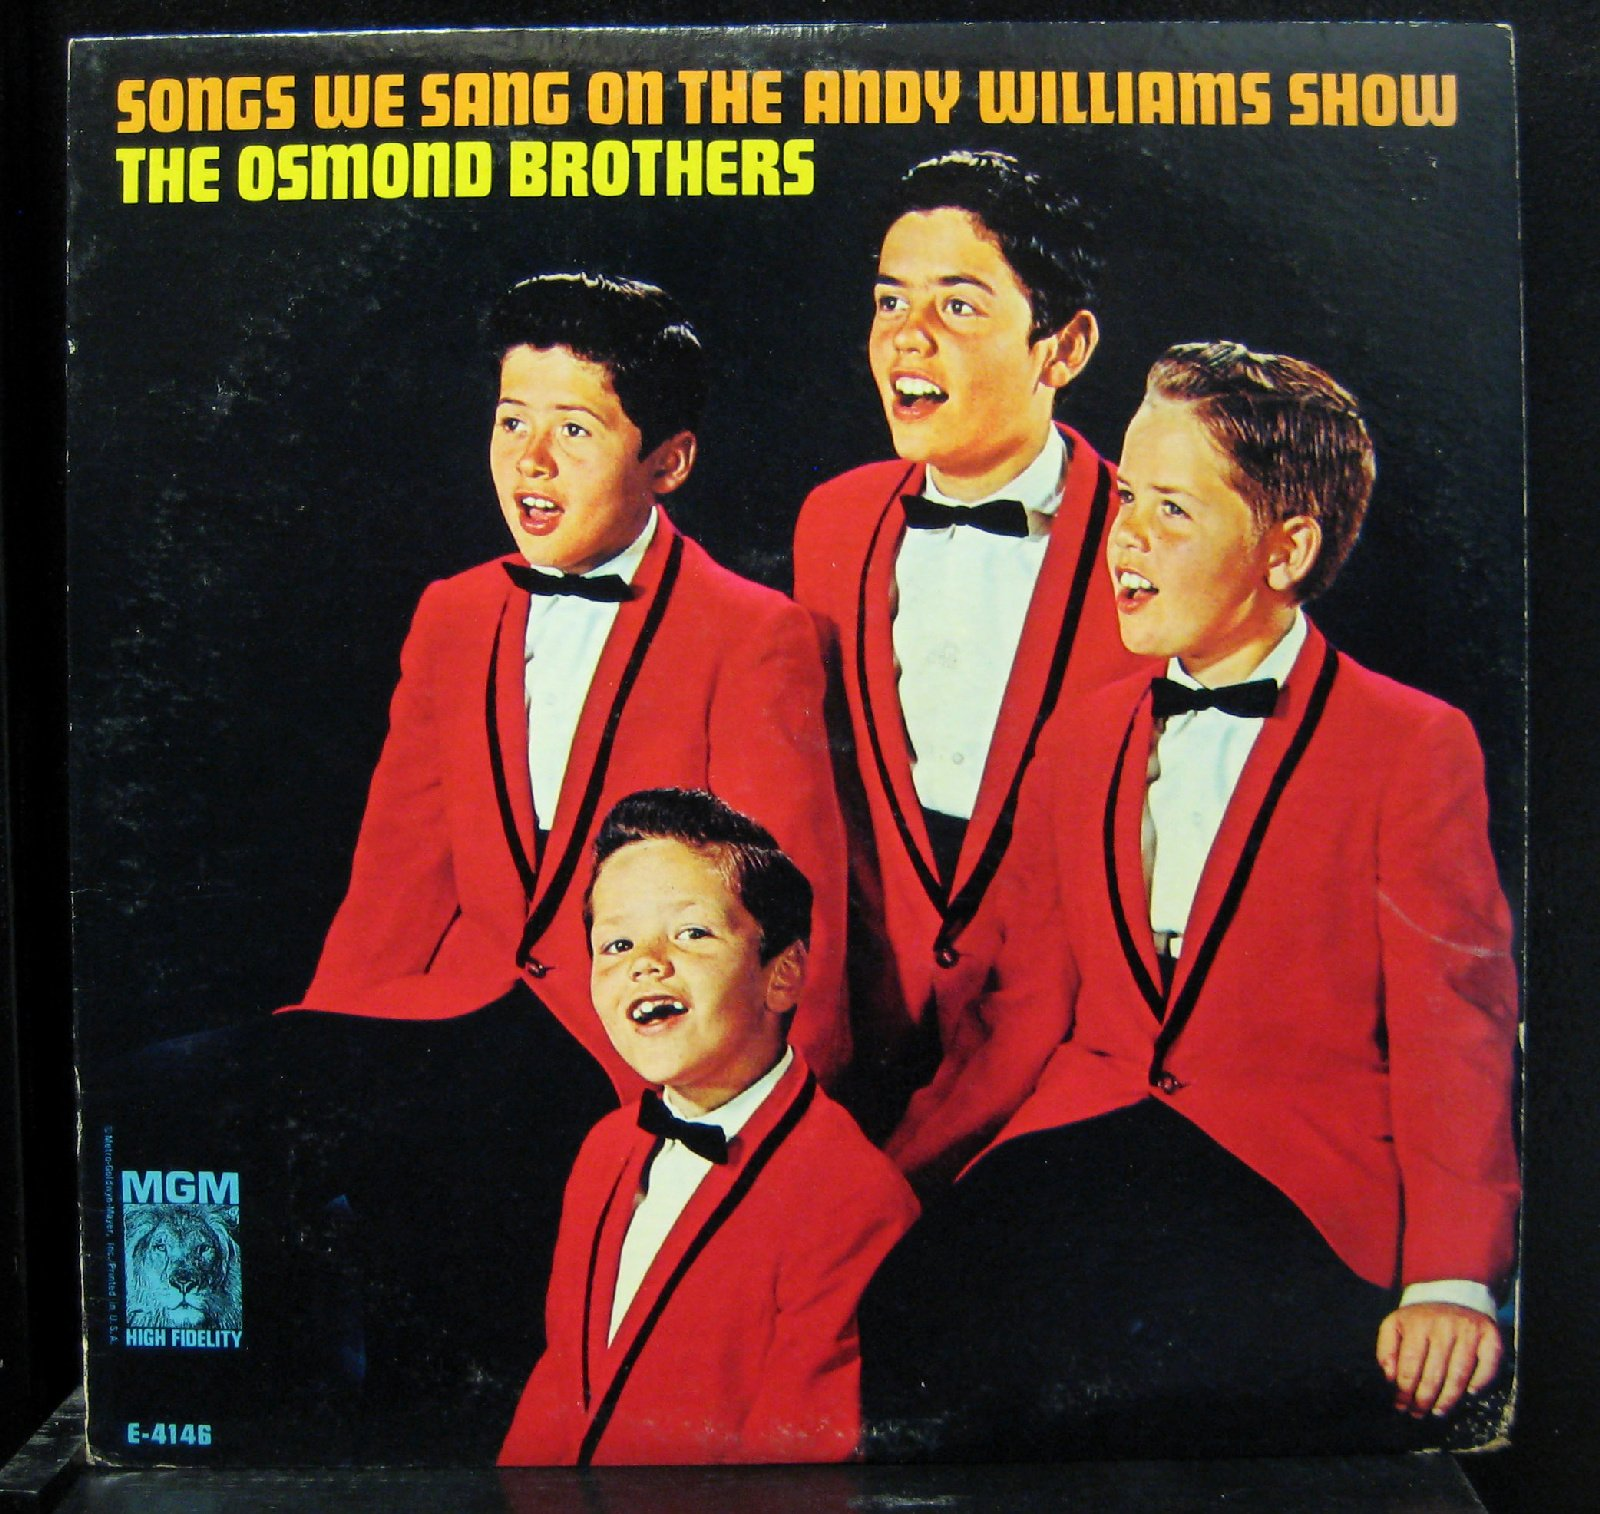 The Osmond Brothers - Songs We Sang On The Andy Williams Show - Lp Vinyl Record